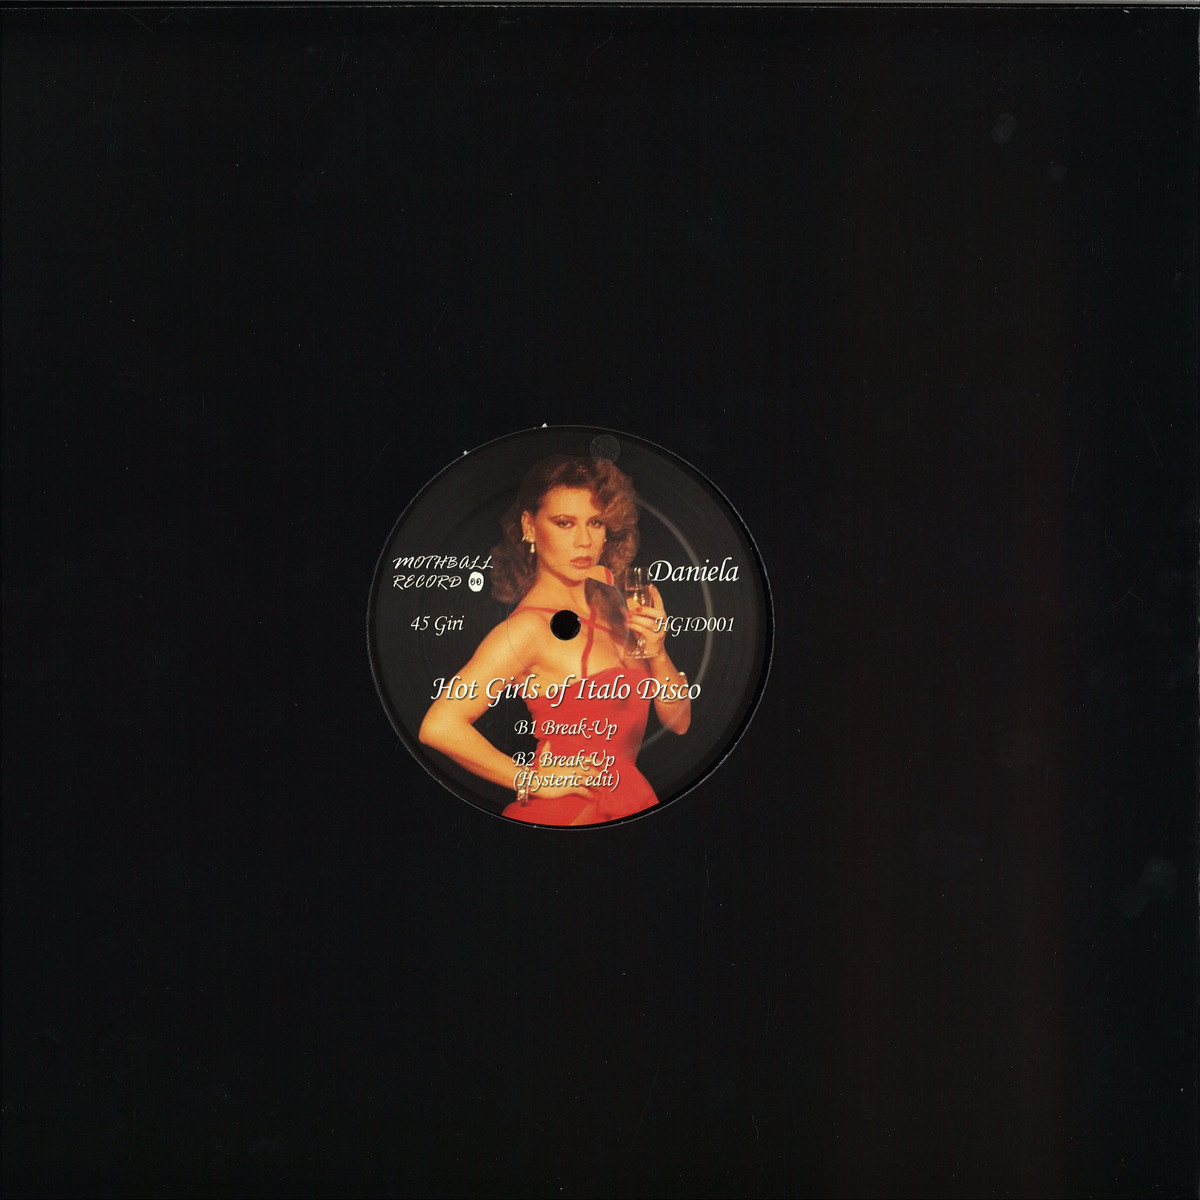 Various - Hot Girls Of Italo Disco / Bordello A Parigi HGID001RE - Vinyl